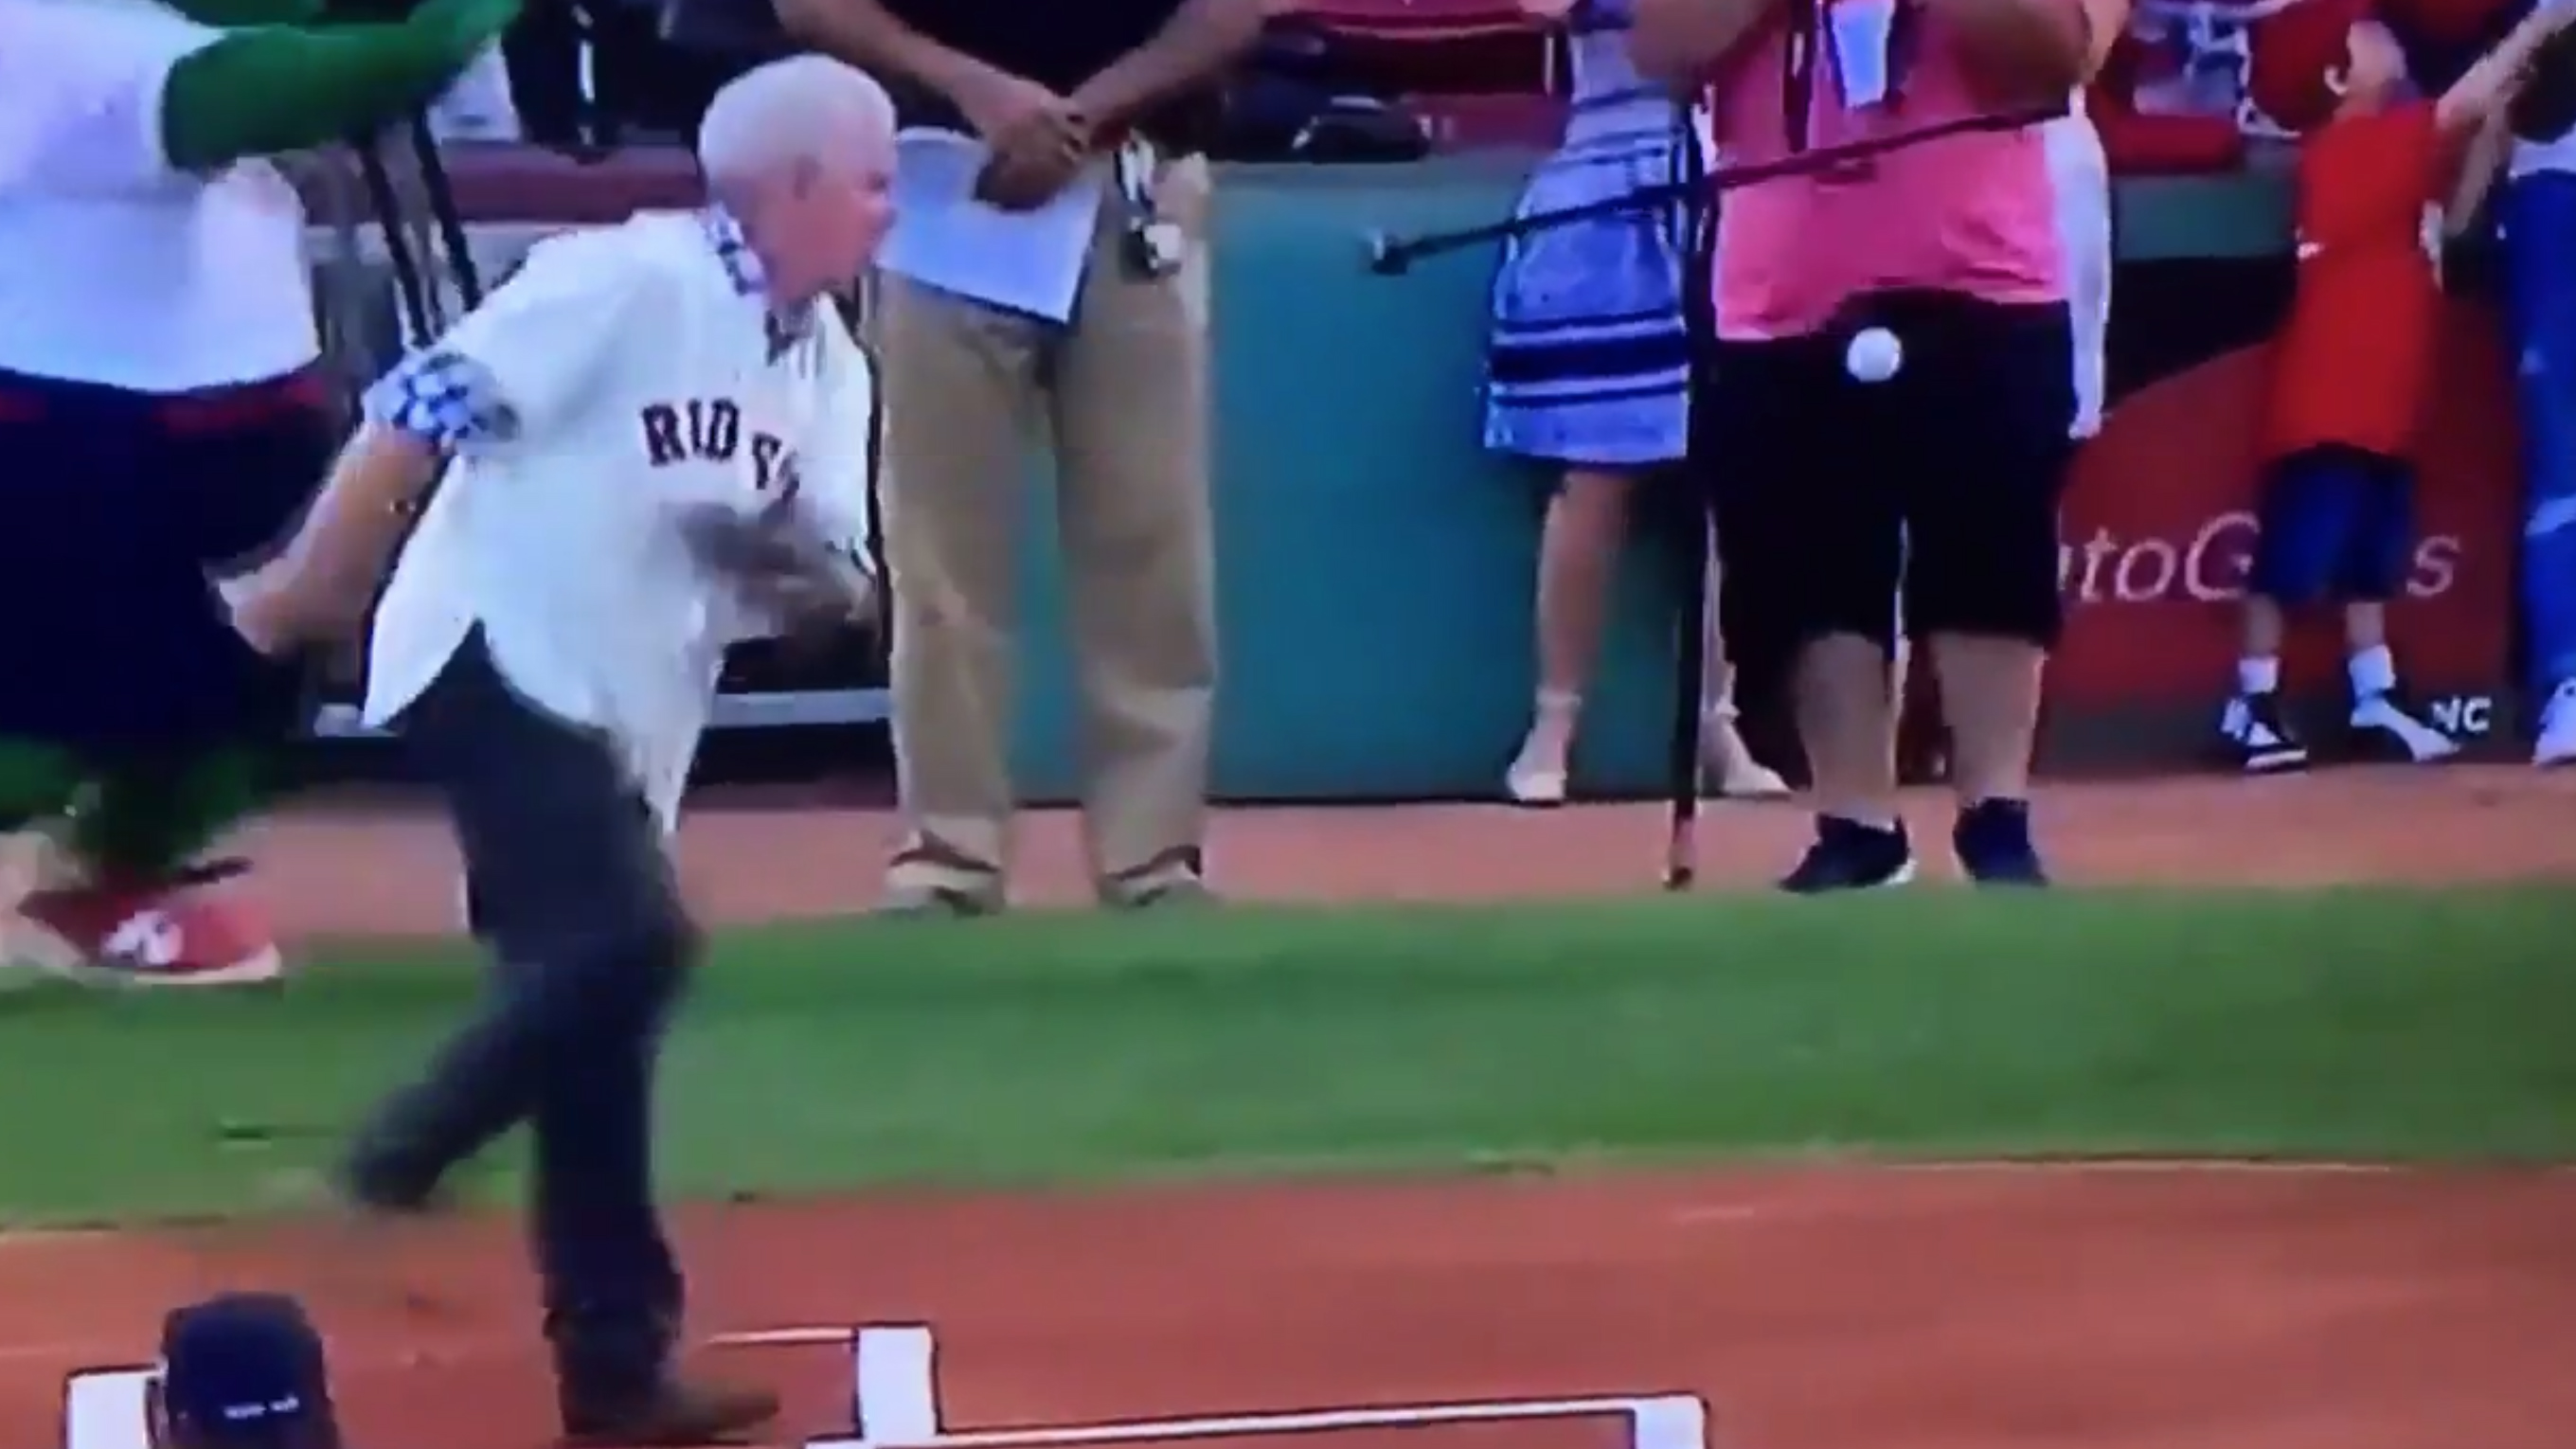 Here's Video of a Solid Contender for Worst First Pitch Ever